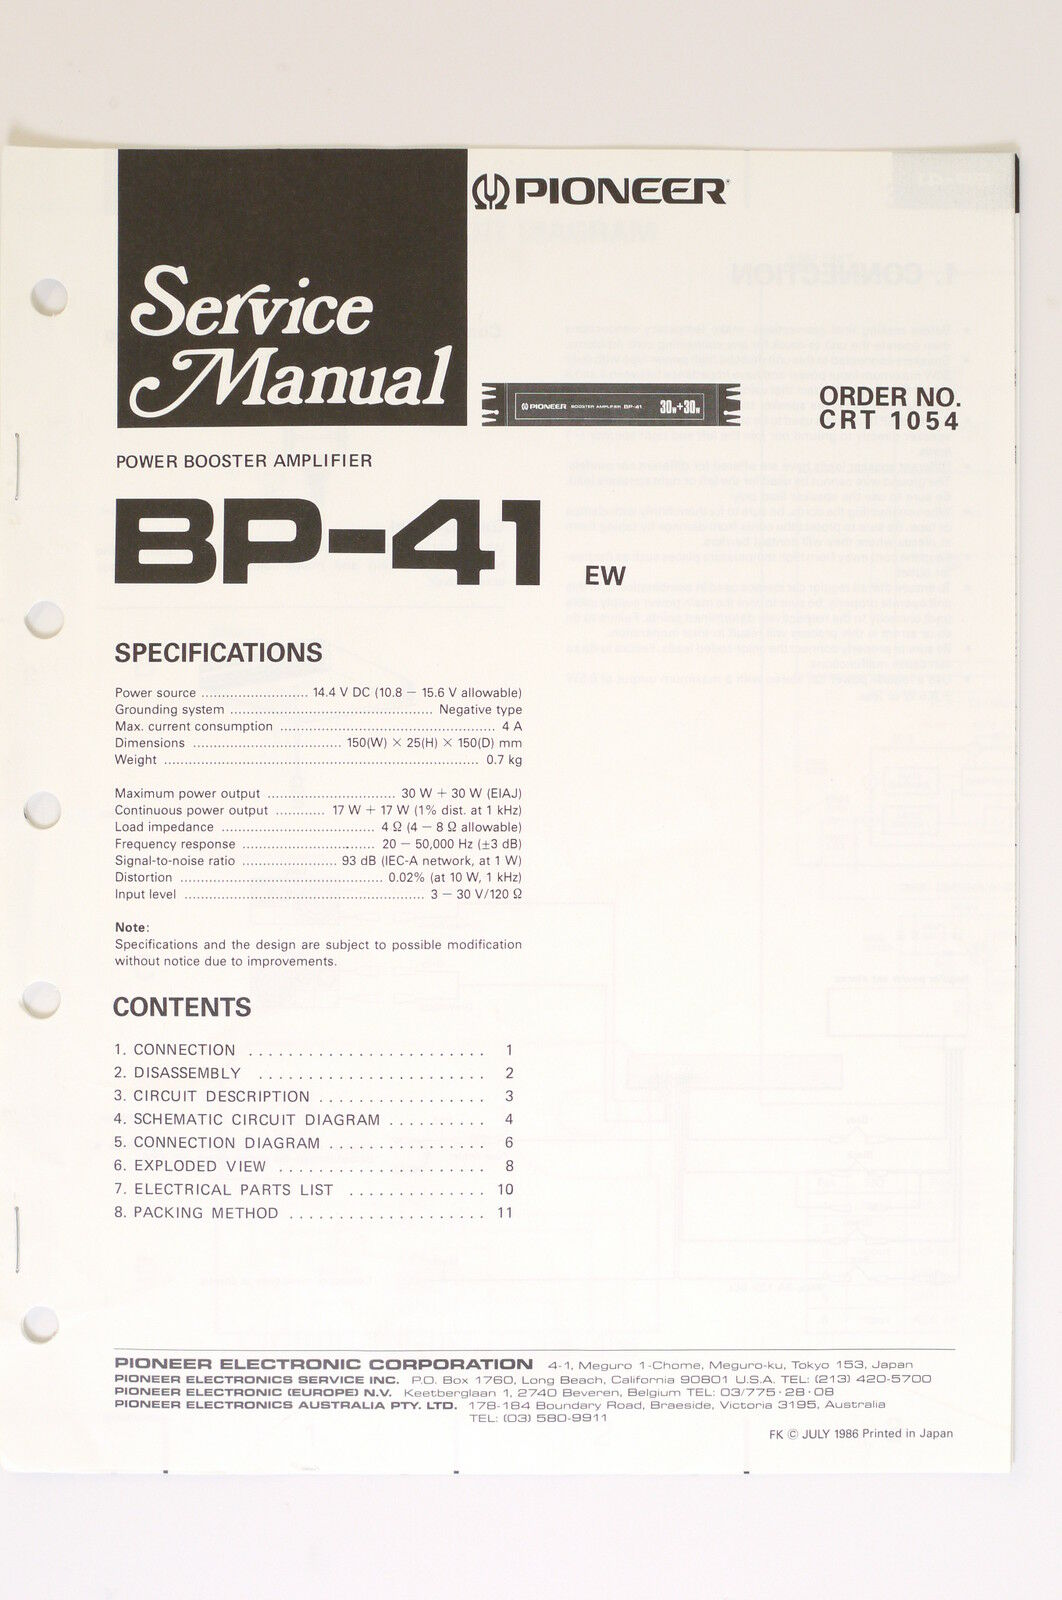 Pioneer Bp 41 Original Power Booster Amplifier Service Manual Wiring Connection Diagram 1 Of 1only 2 Available See More